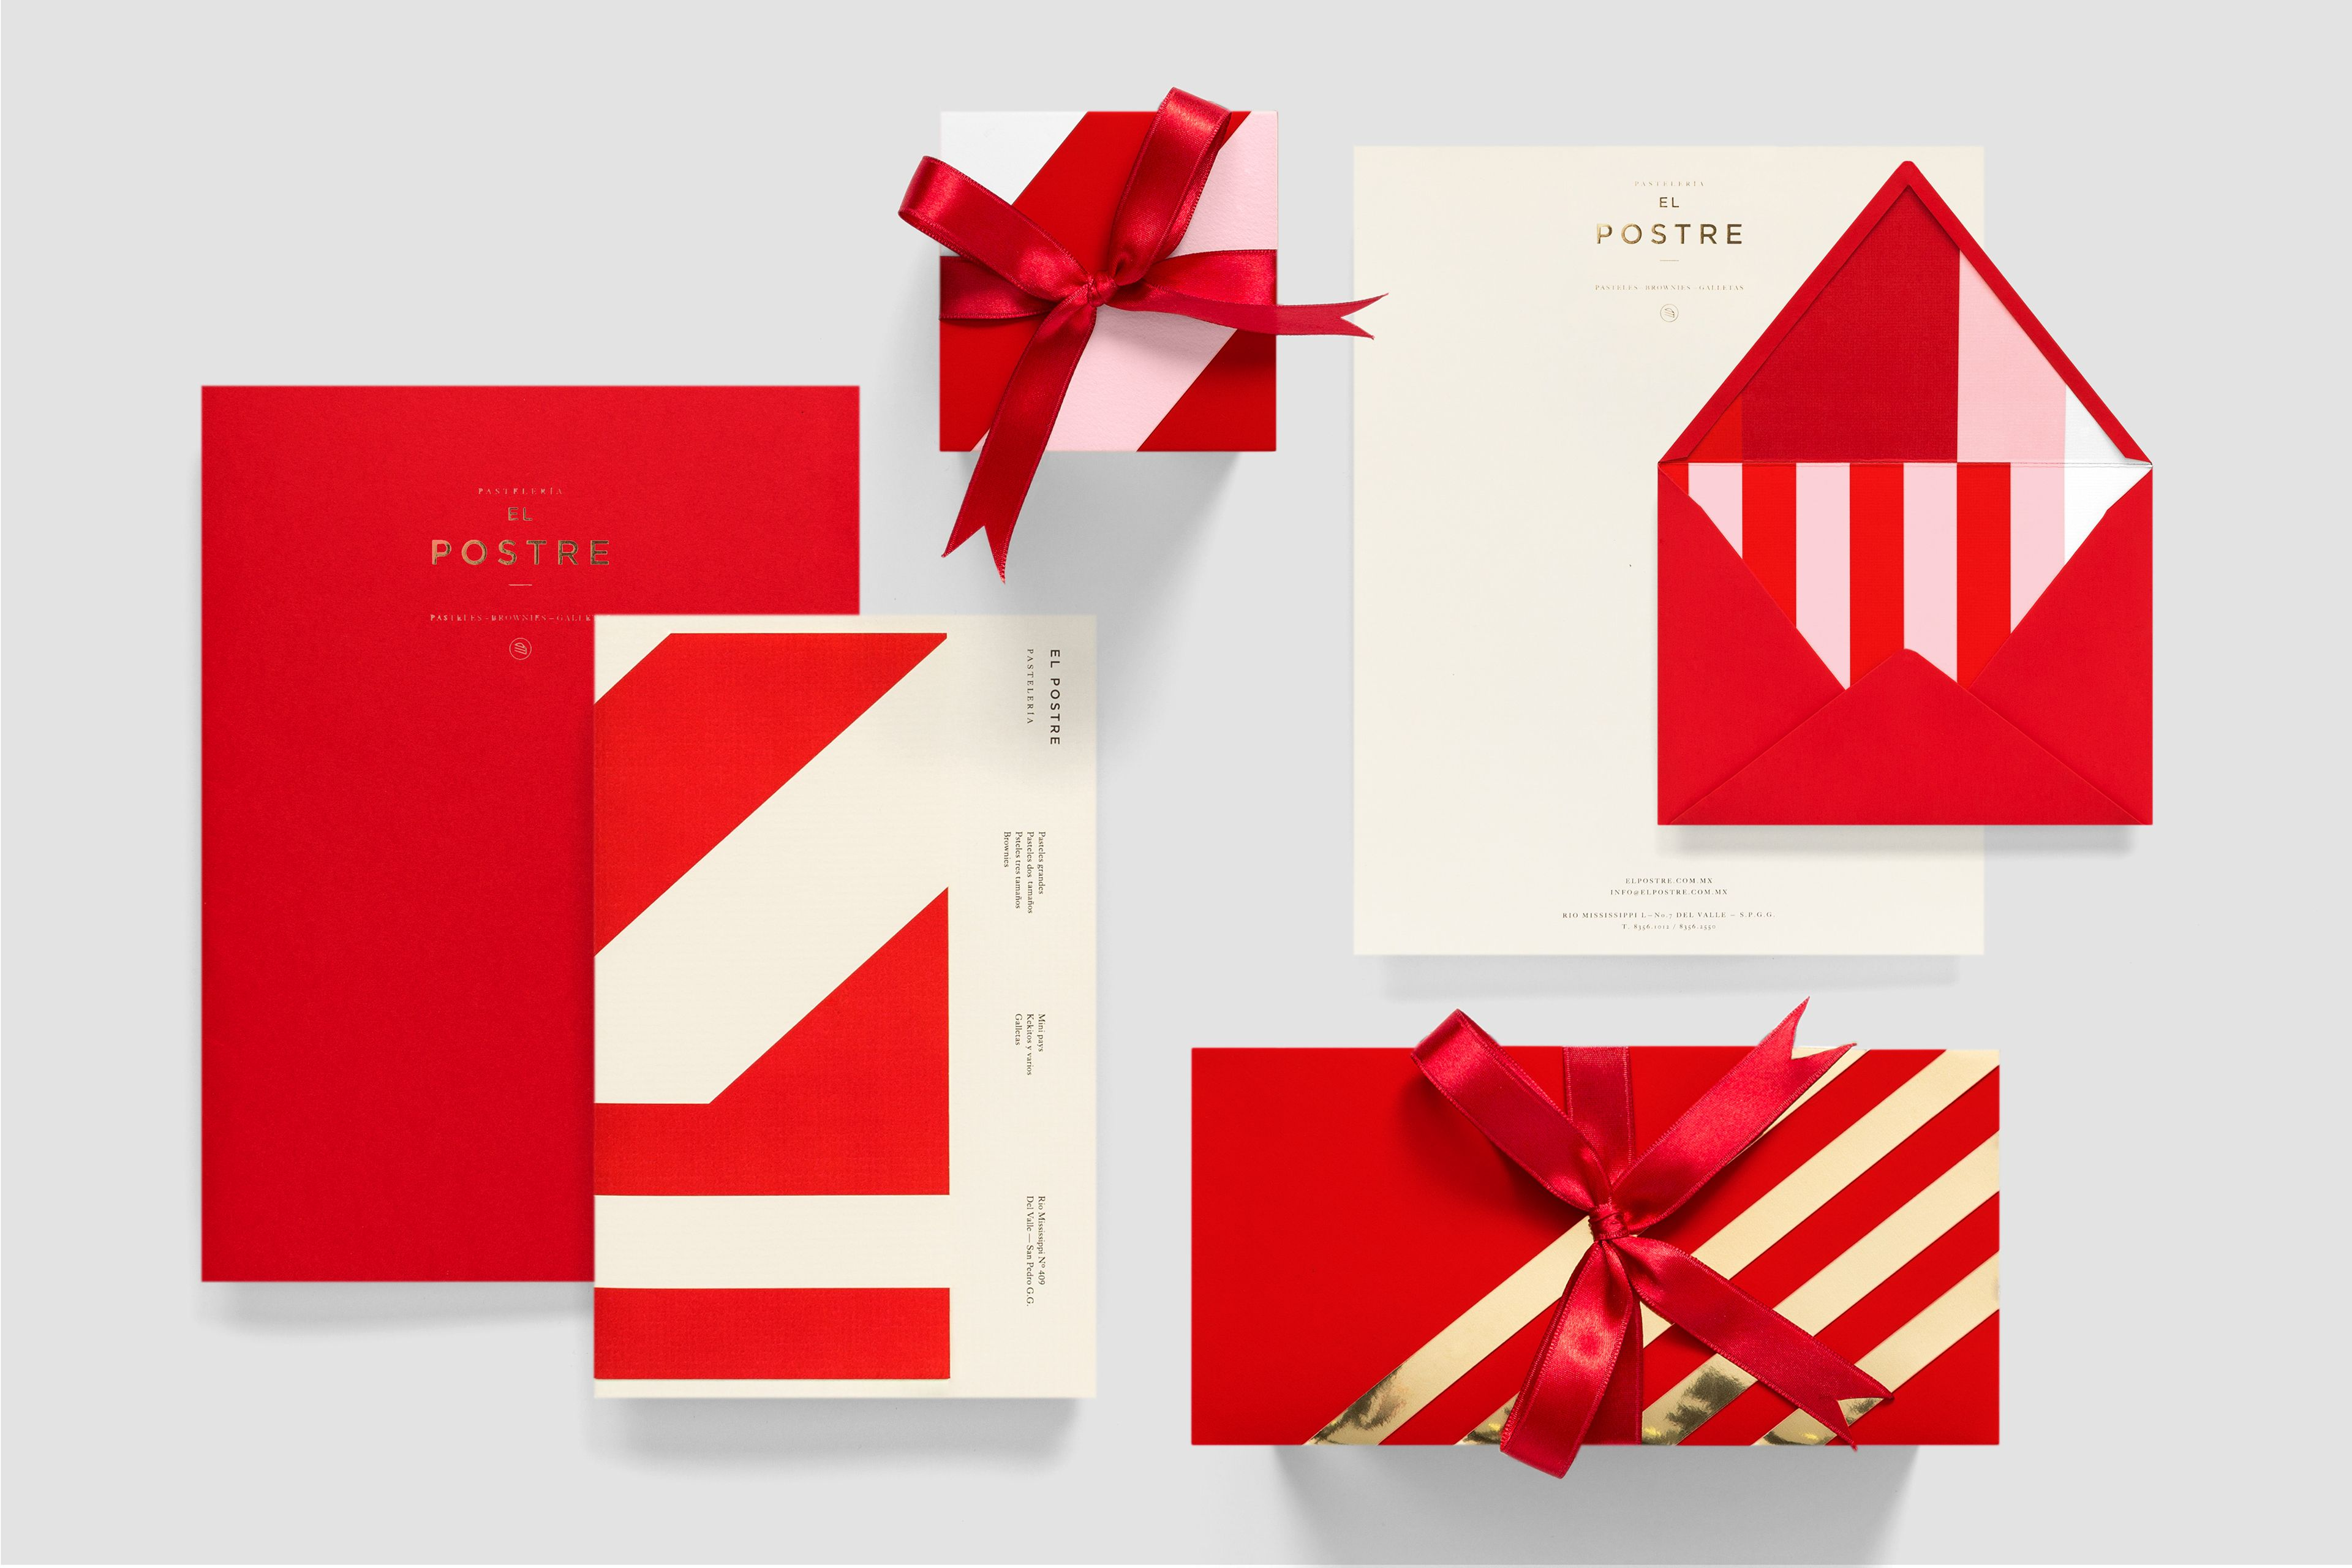 El Postre | Pastry Boutique | Branding and Identity